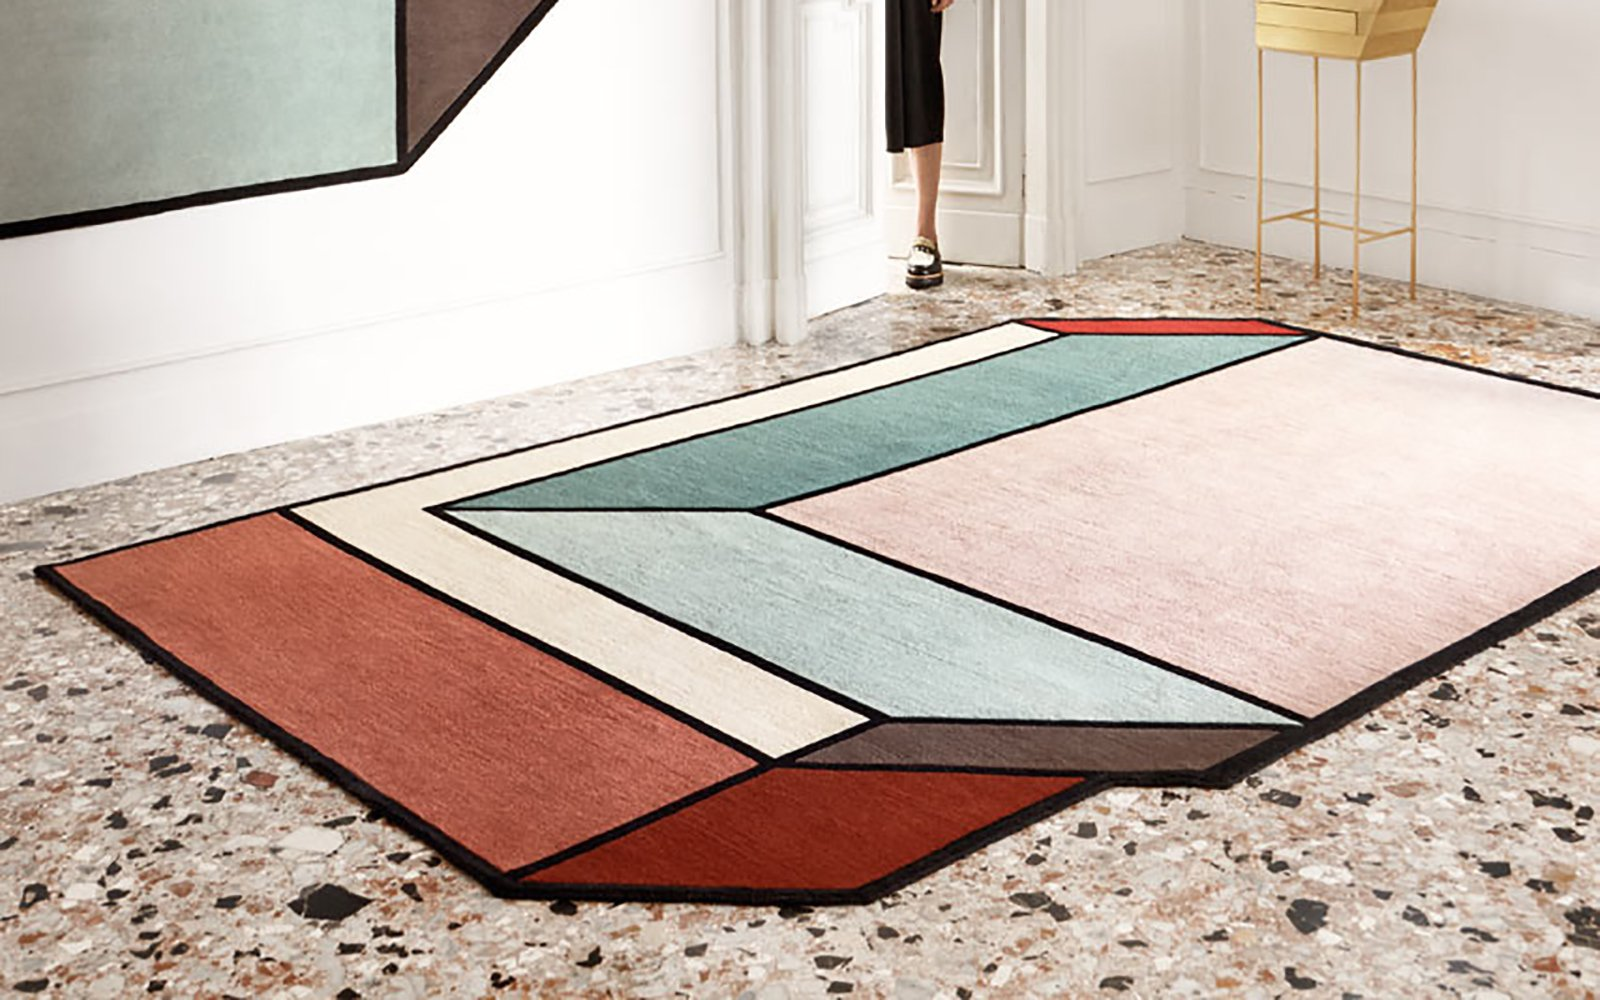 Design Crush: Stunning Designer Rugs by Patricia Urquiola